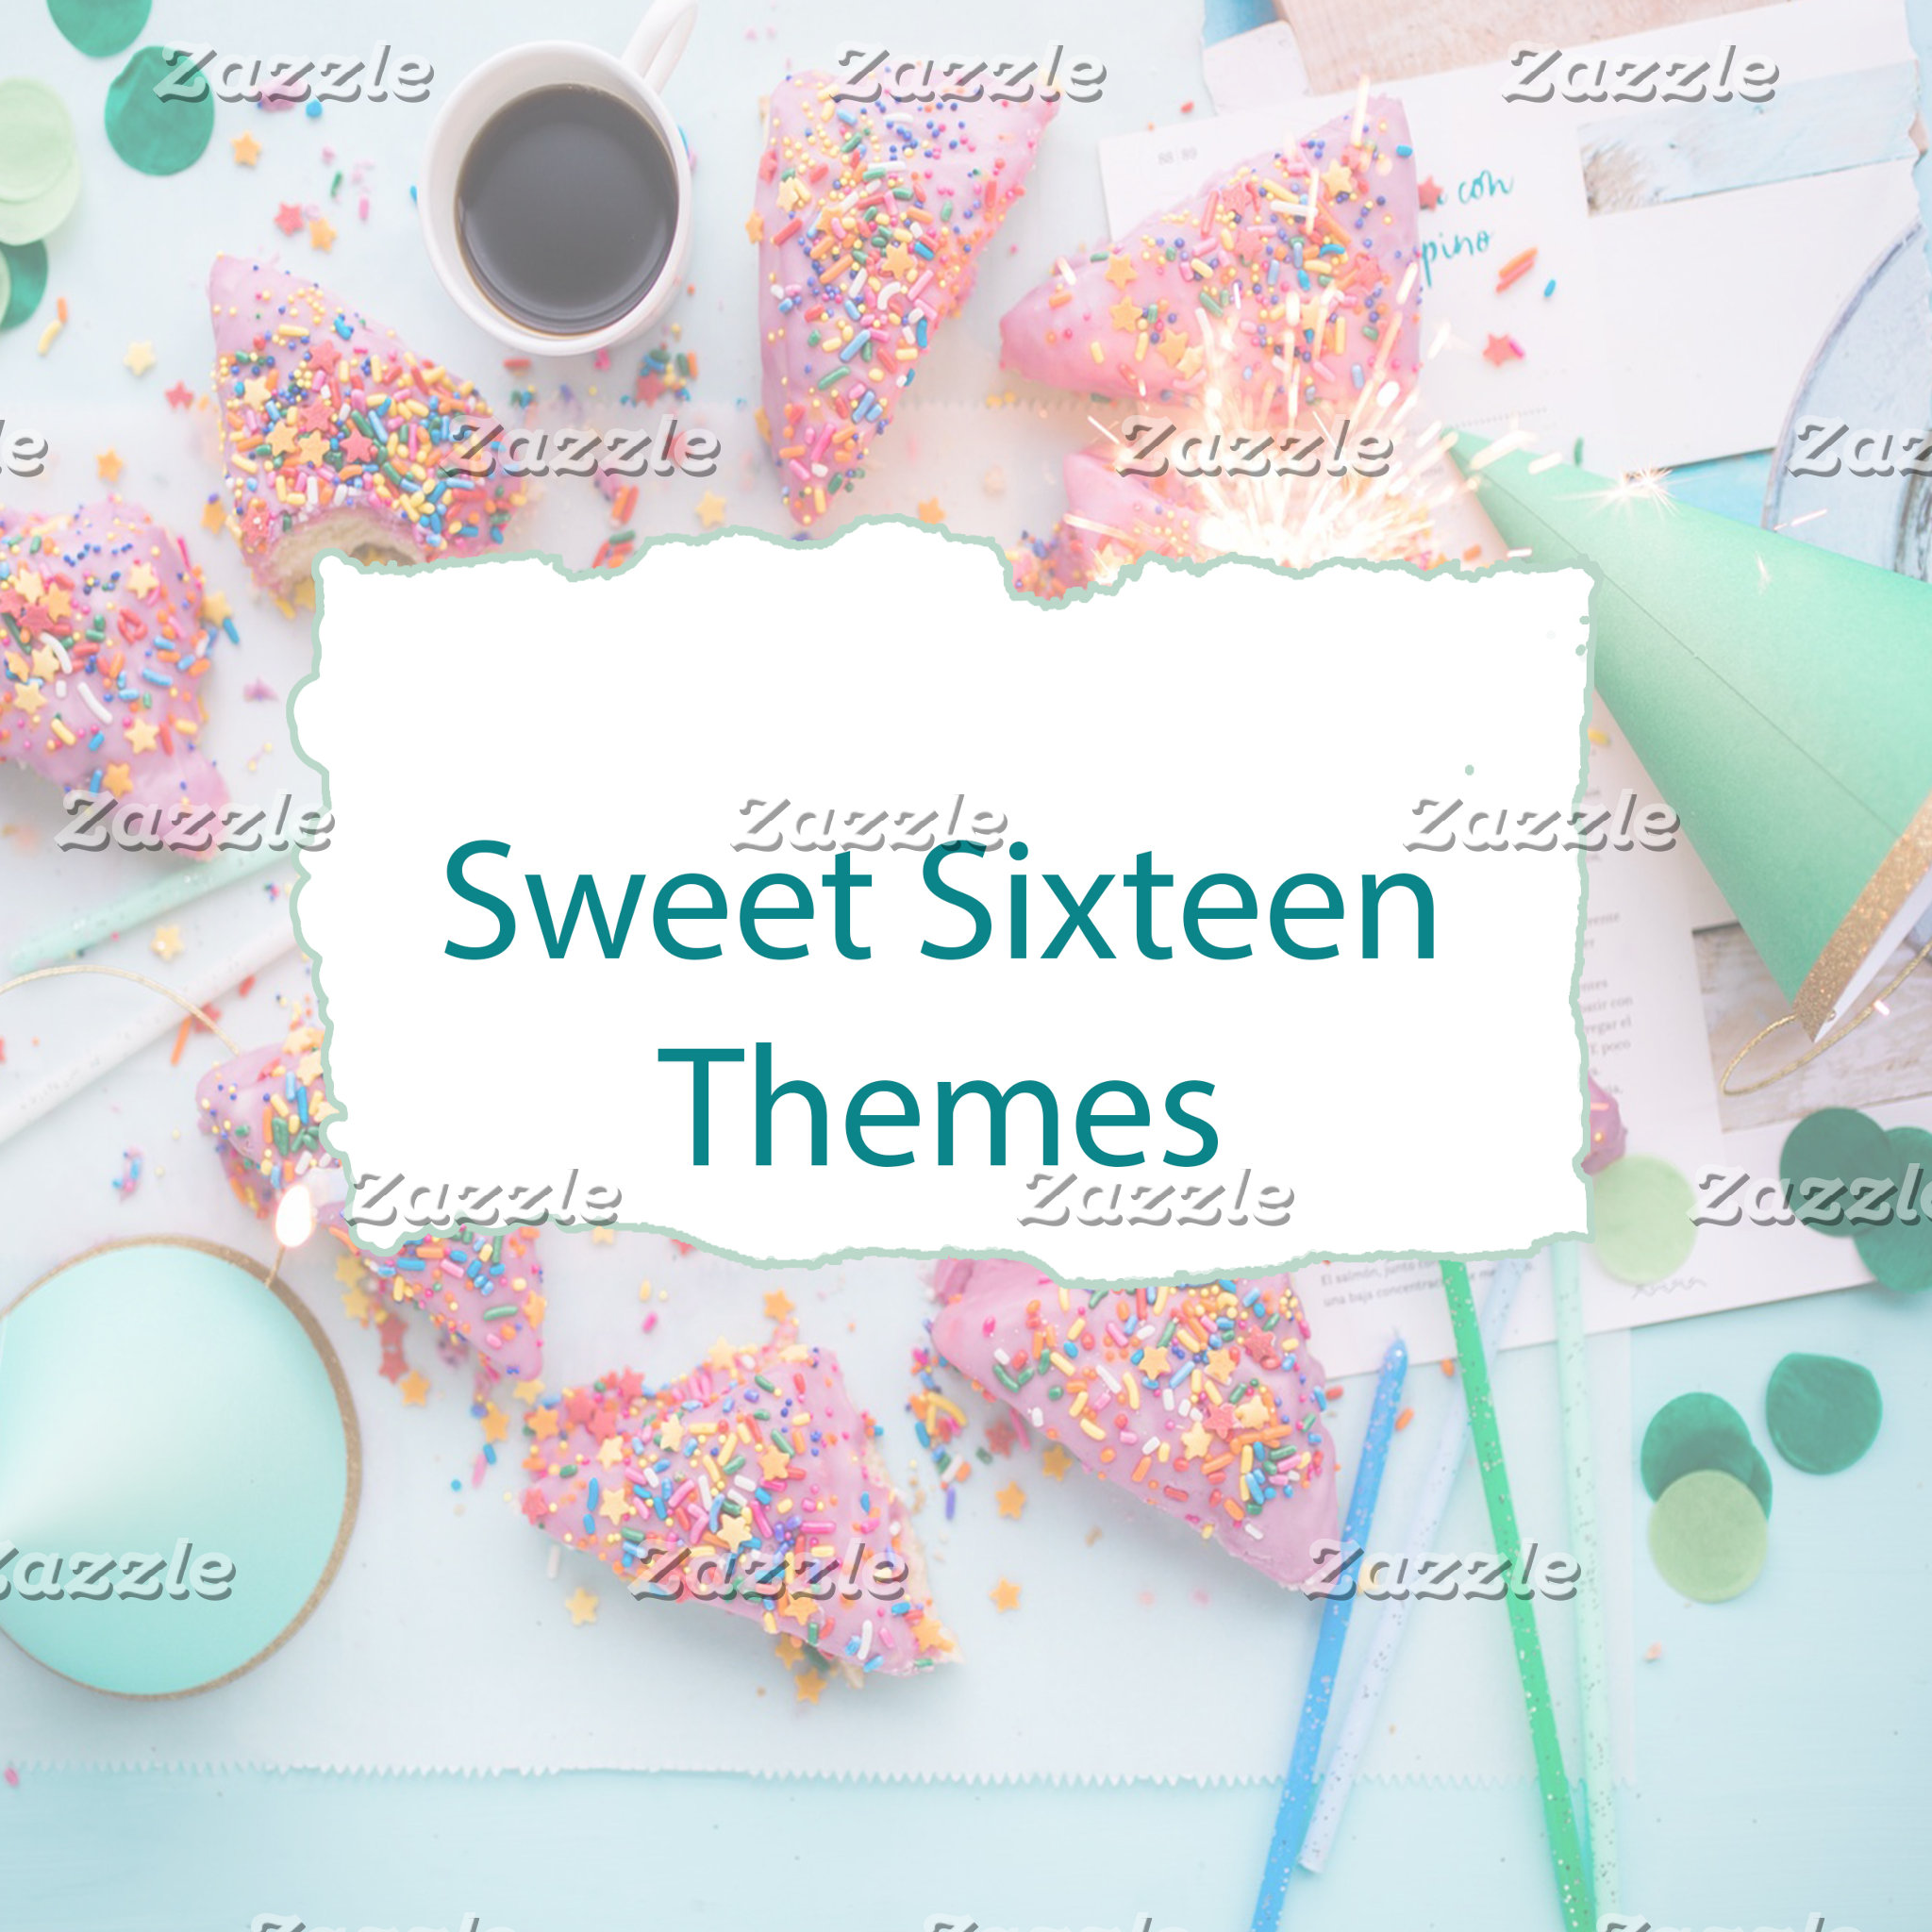 Sweet Sixteen Themes